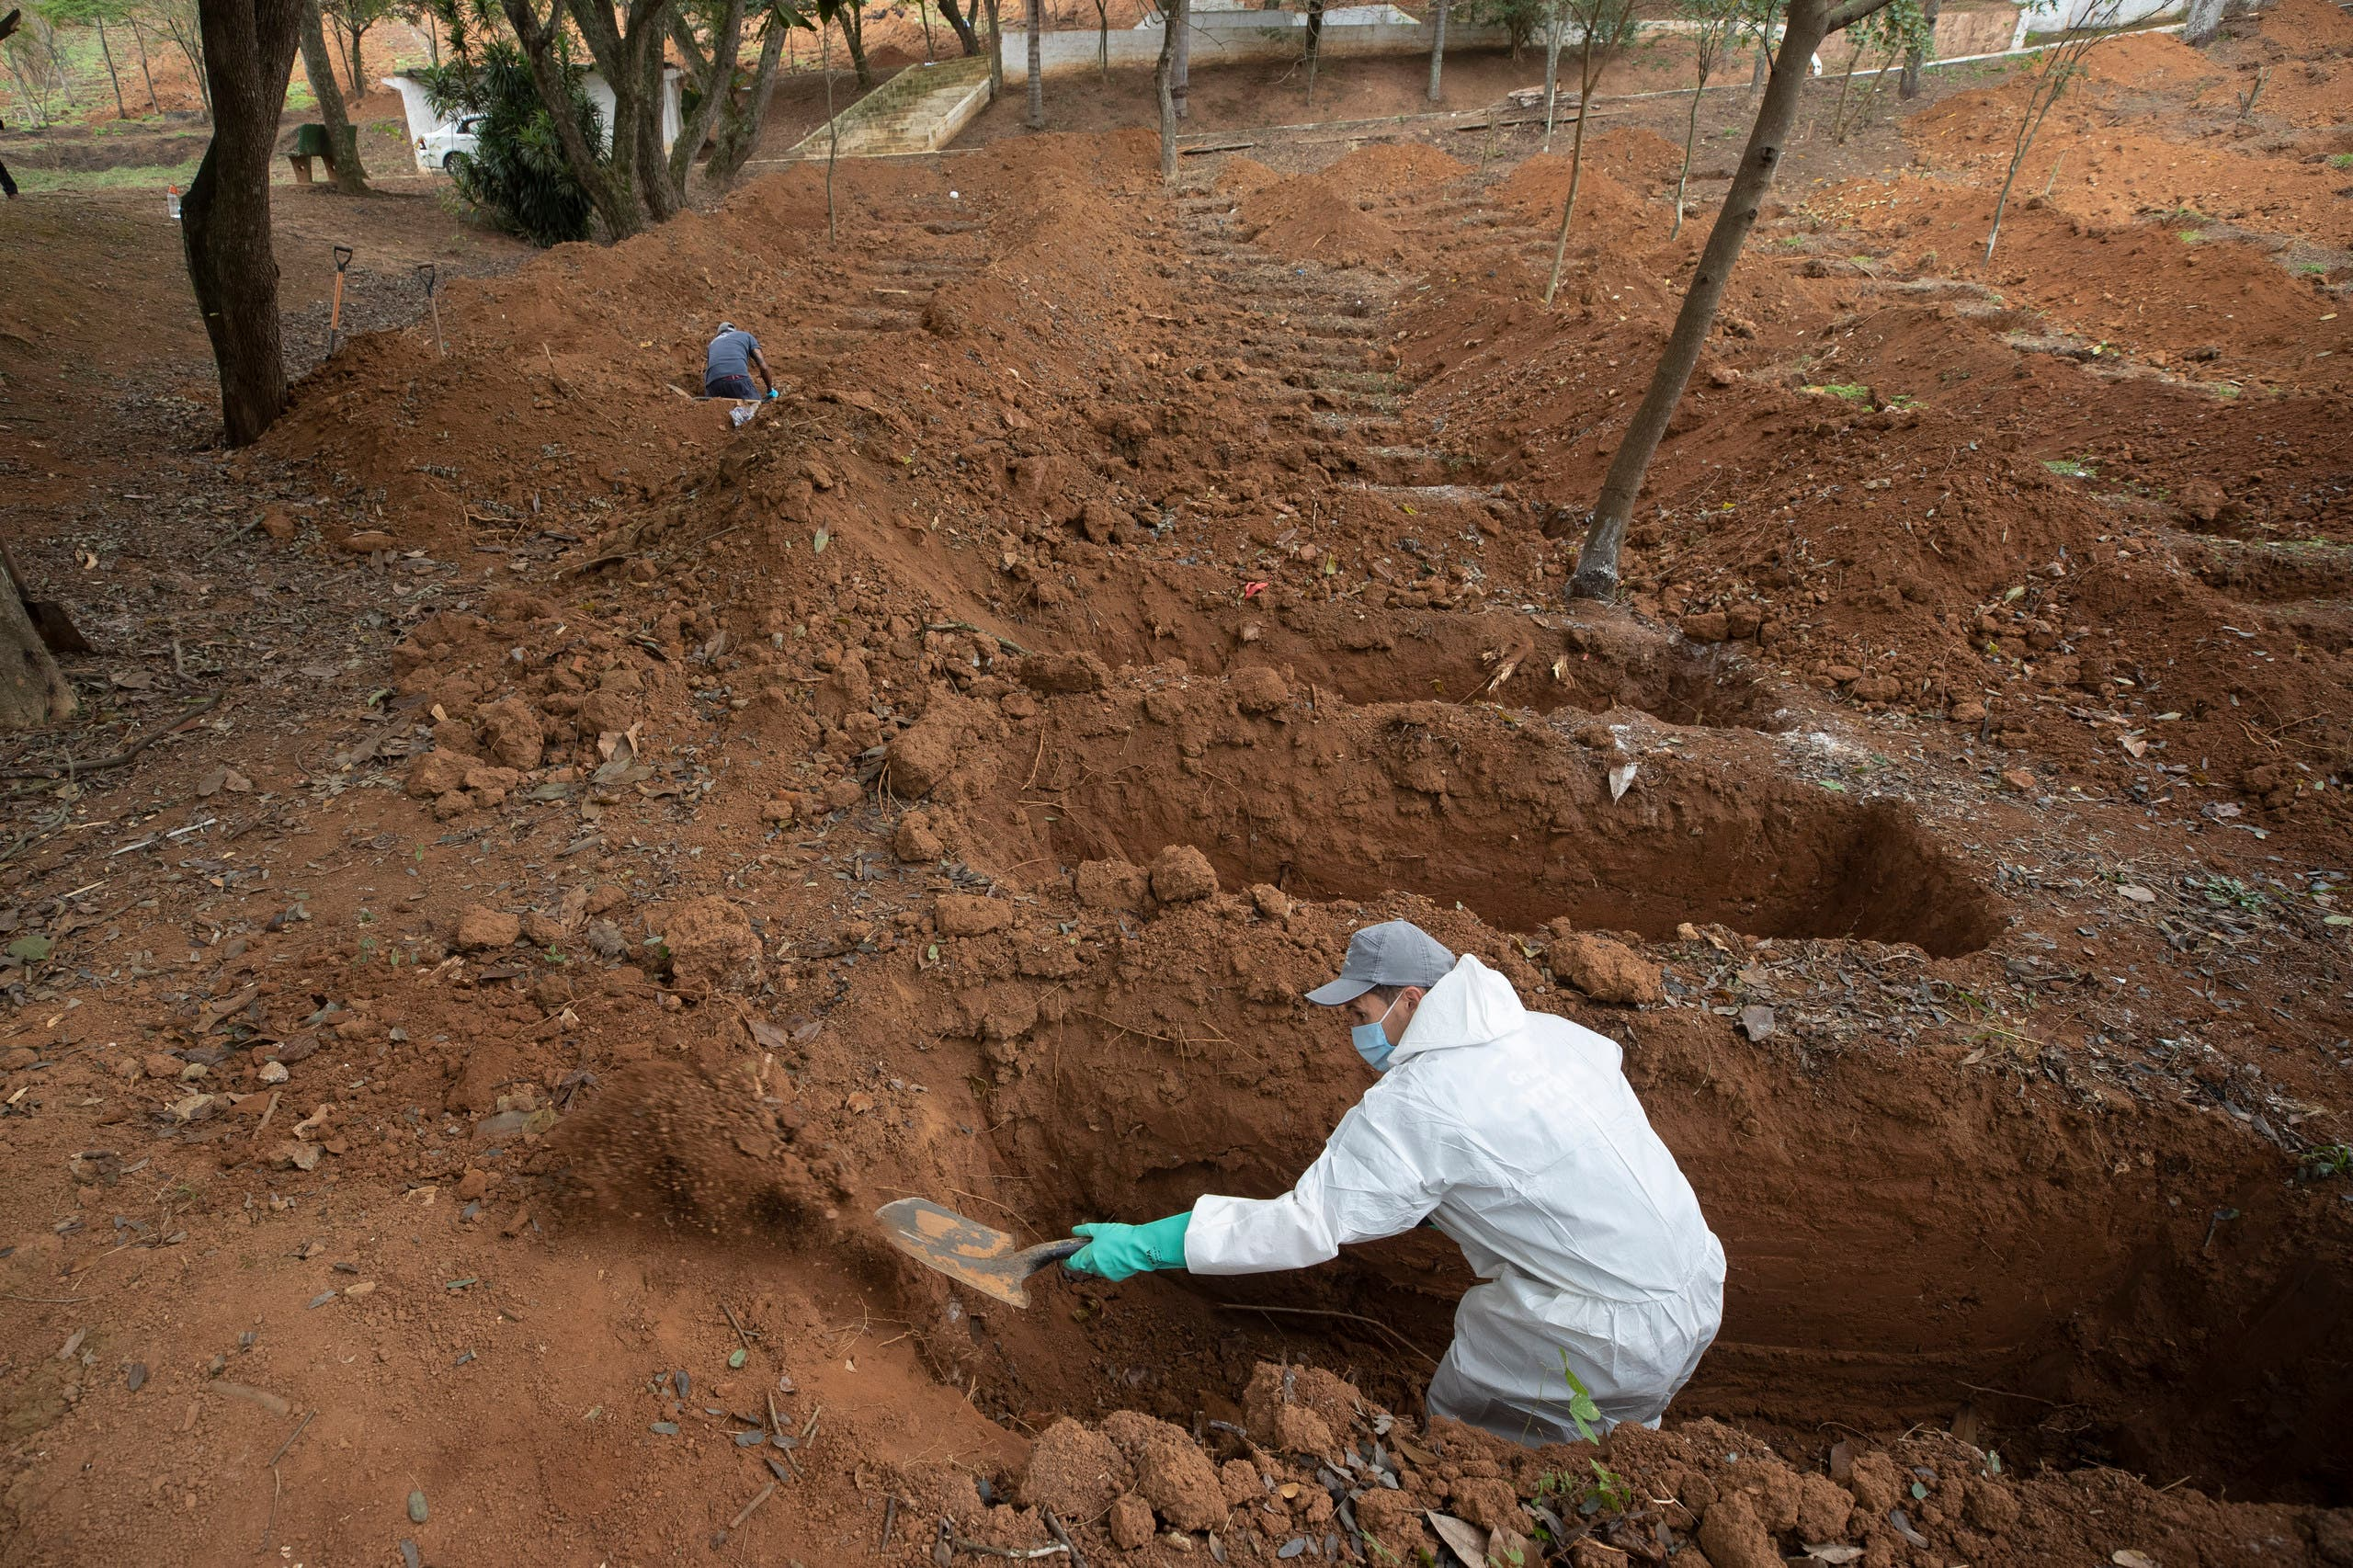 A cemetery worker digs graves in a section exclusively for COVID-19 victims at the Sao Luiz cemetery in Sao Paulo, Brazil, on June 4, 2020. (AP)